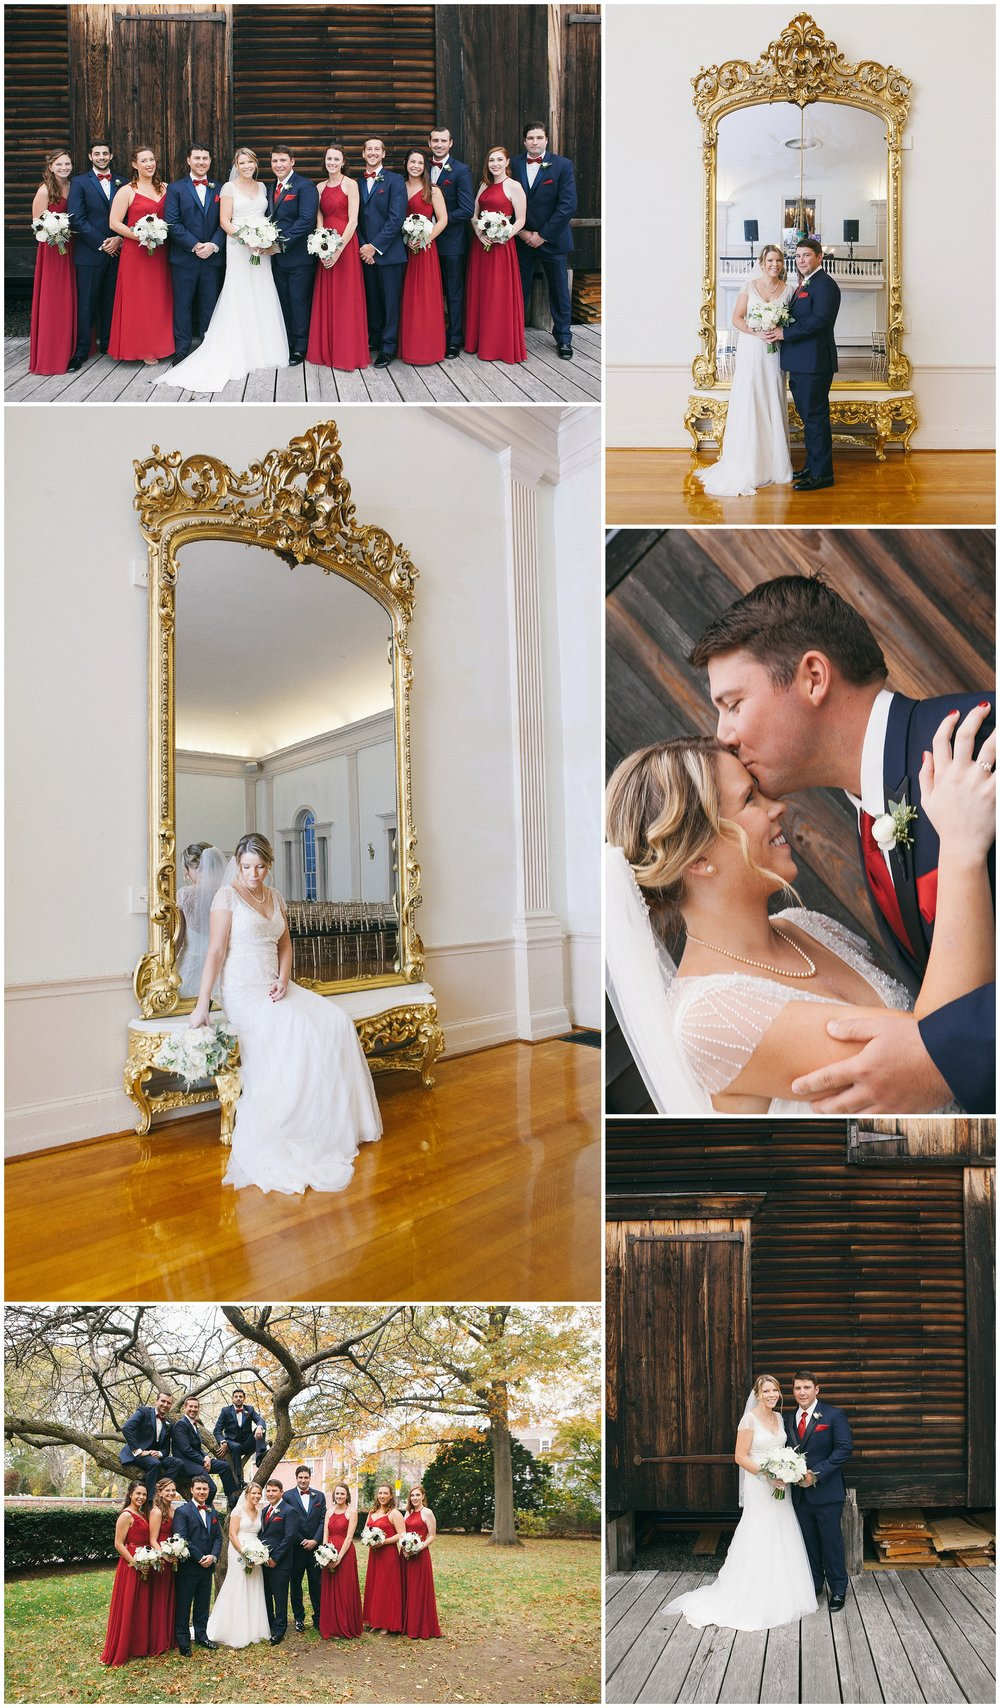 Fall wedding portraiture in New England, including images of bride and groom as well as pictures of bridal party. In lower left, groomsmen add verticality to image by climbing into the trees. - Wedding Photography by Ryan Richardson Photography